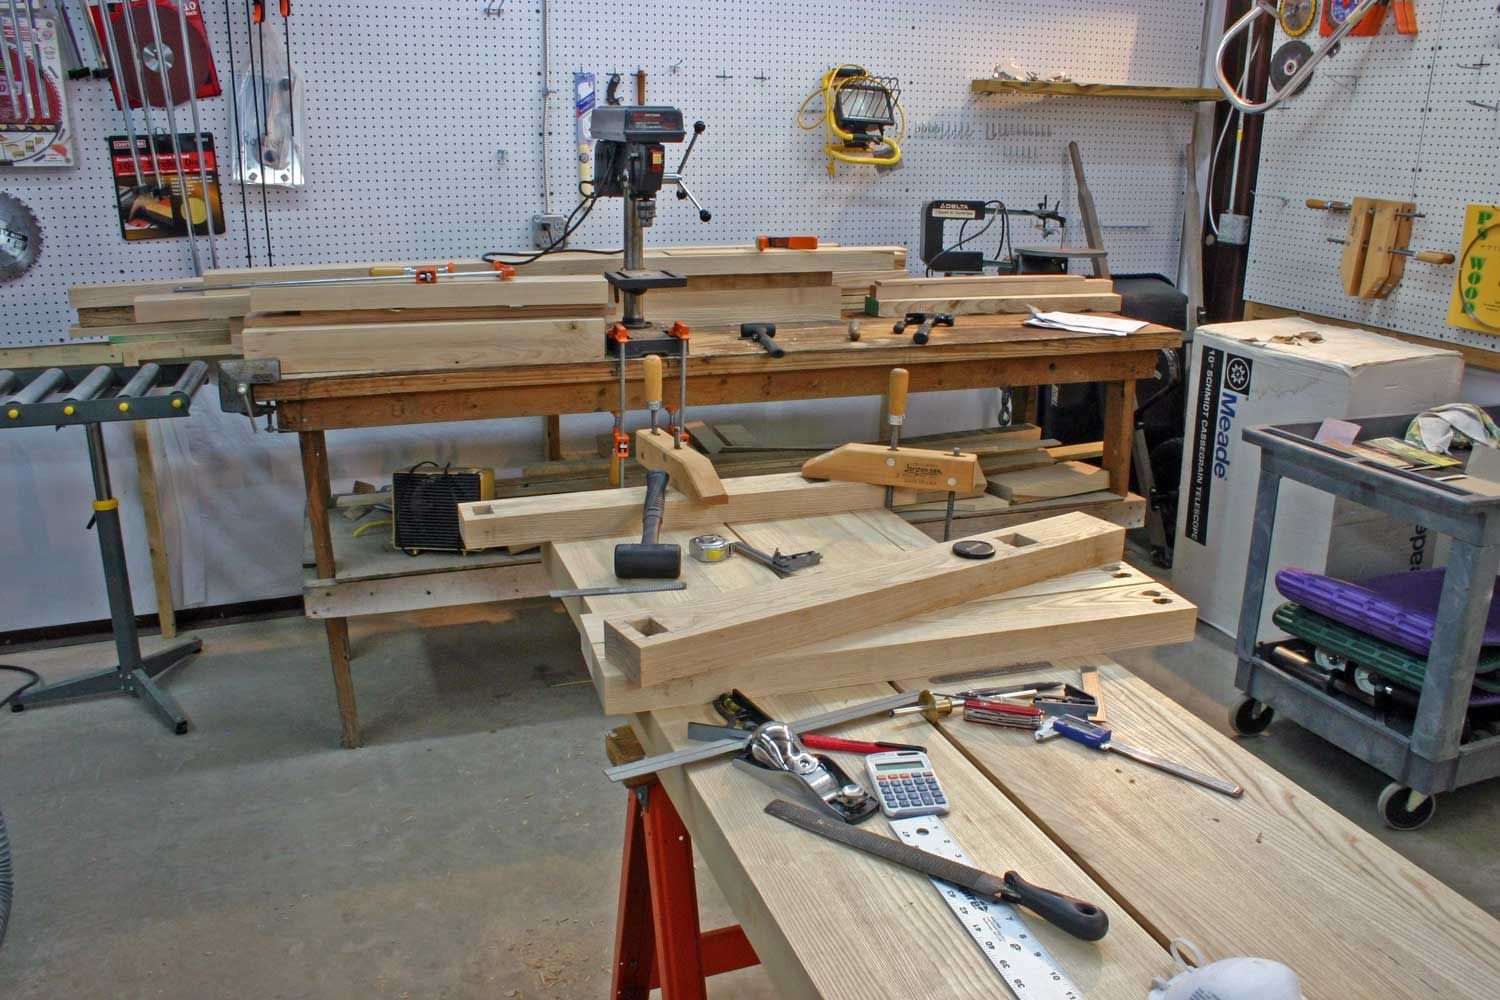 Garage Woodworking Shop Layout Plan If Your Interested In Viewing Some Informative Videos Be